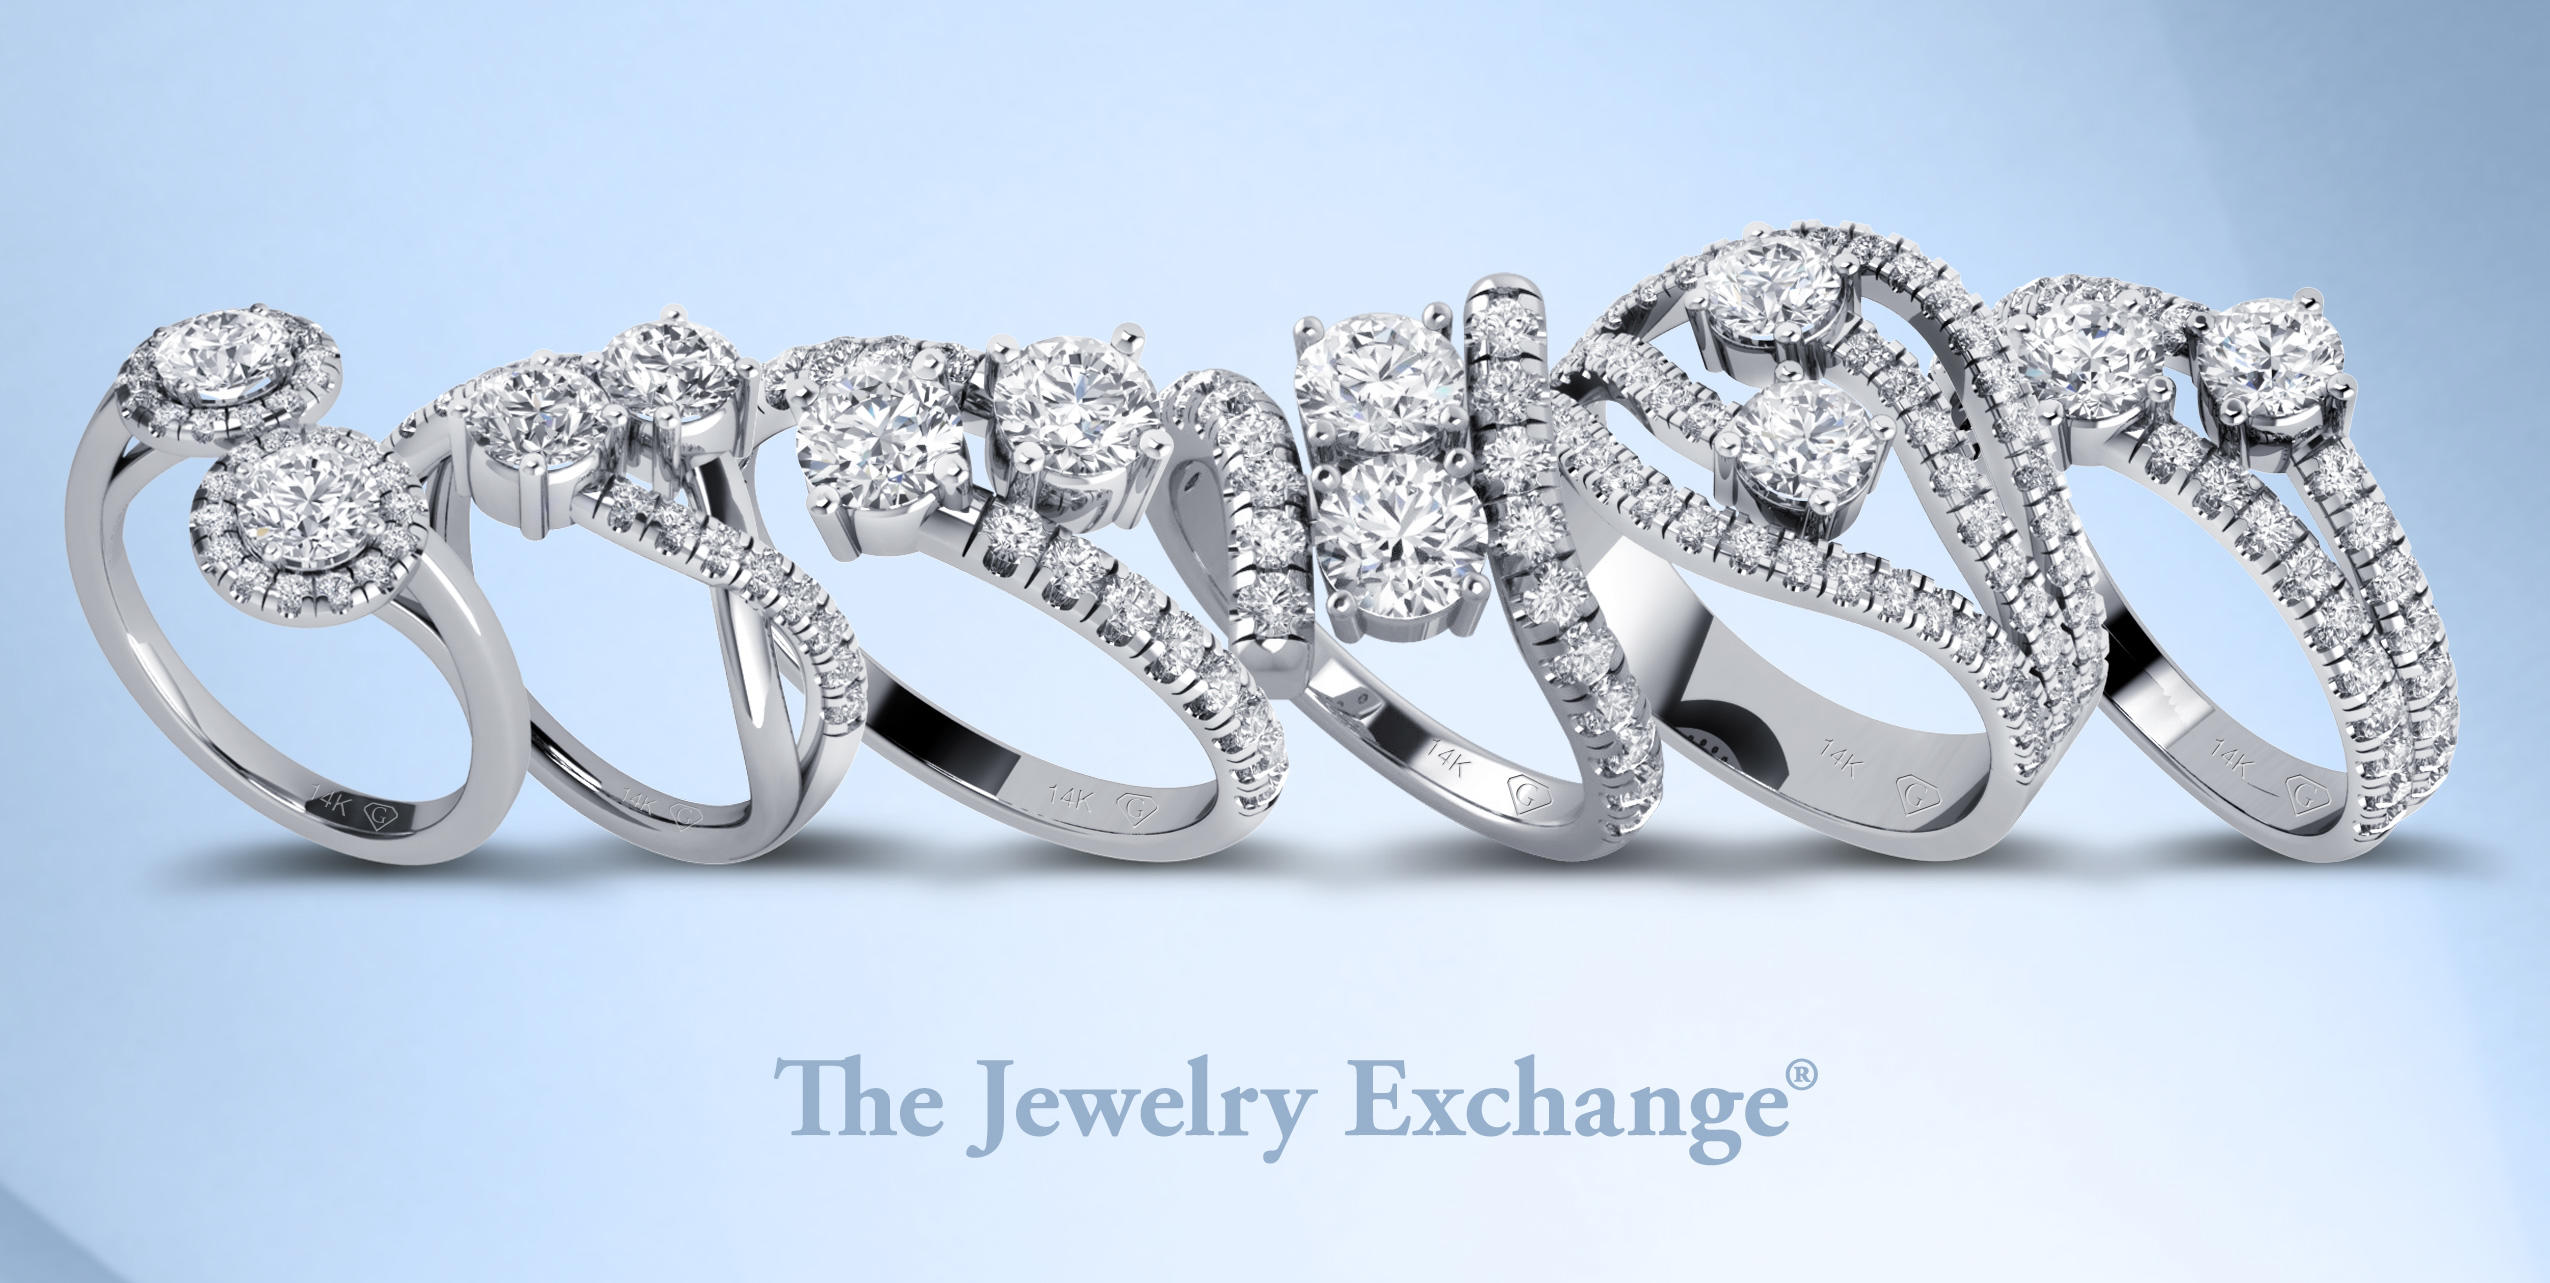 The Jewelry Exchange in New Jersey | Jewelry Store | Engagement Ring Specials image 36